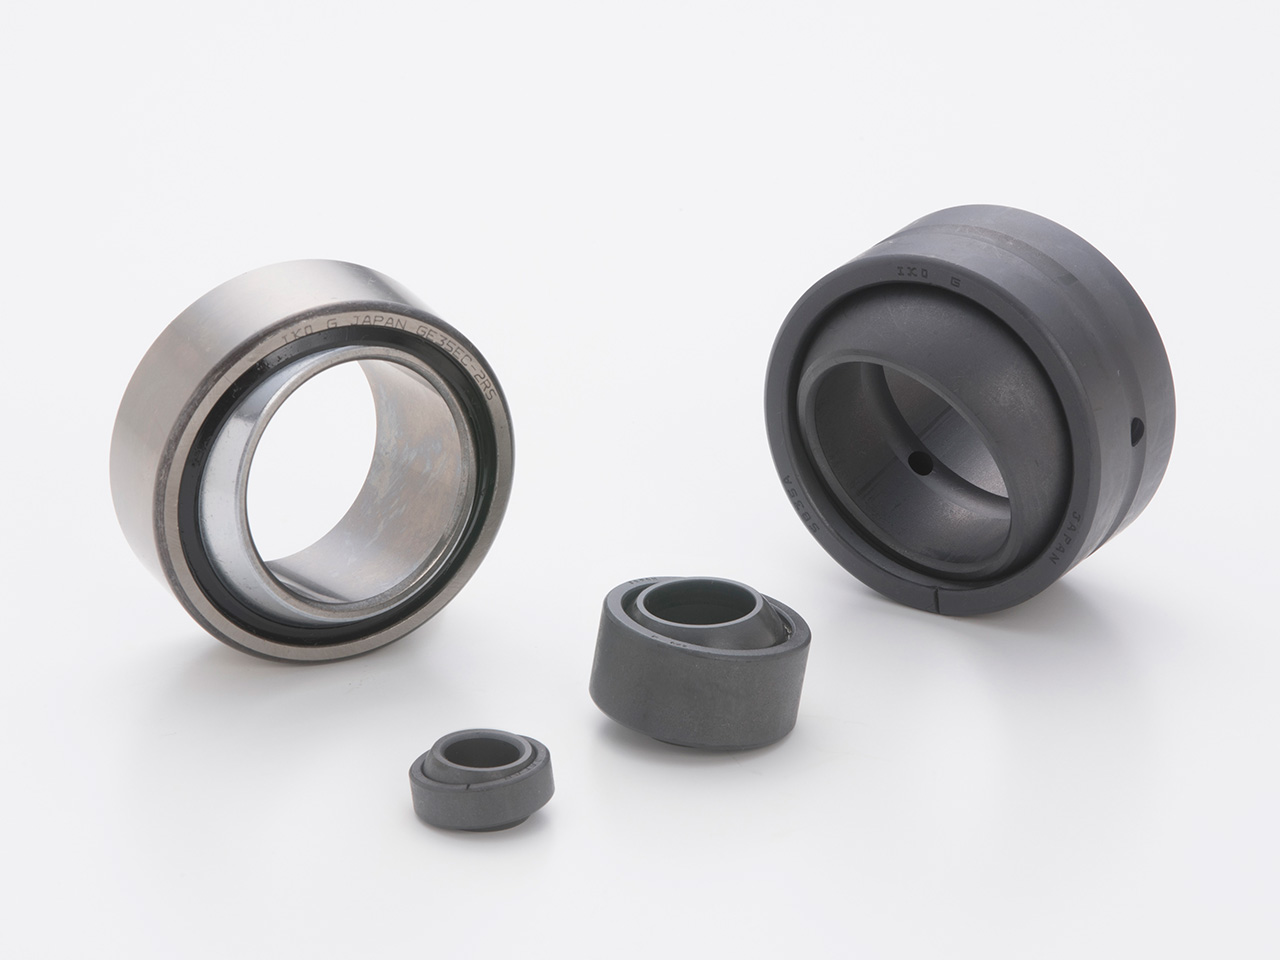 Spherical Bushings